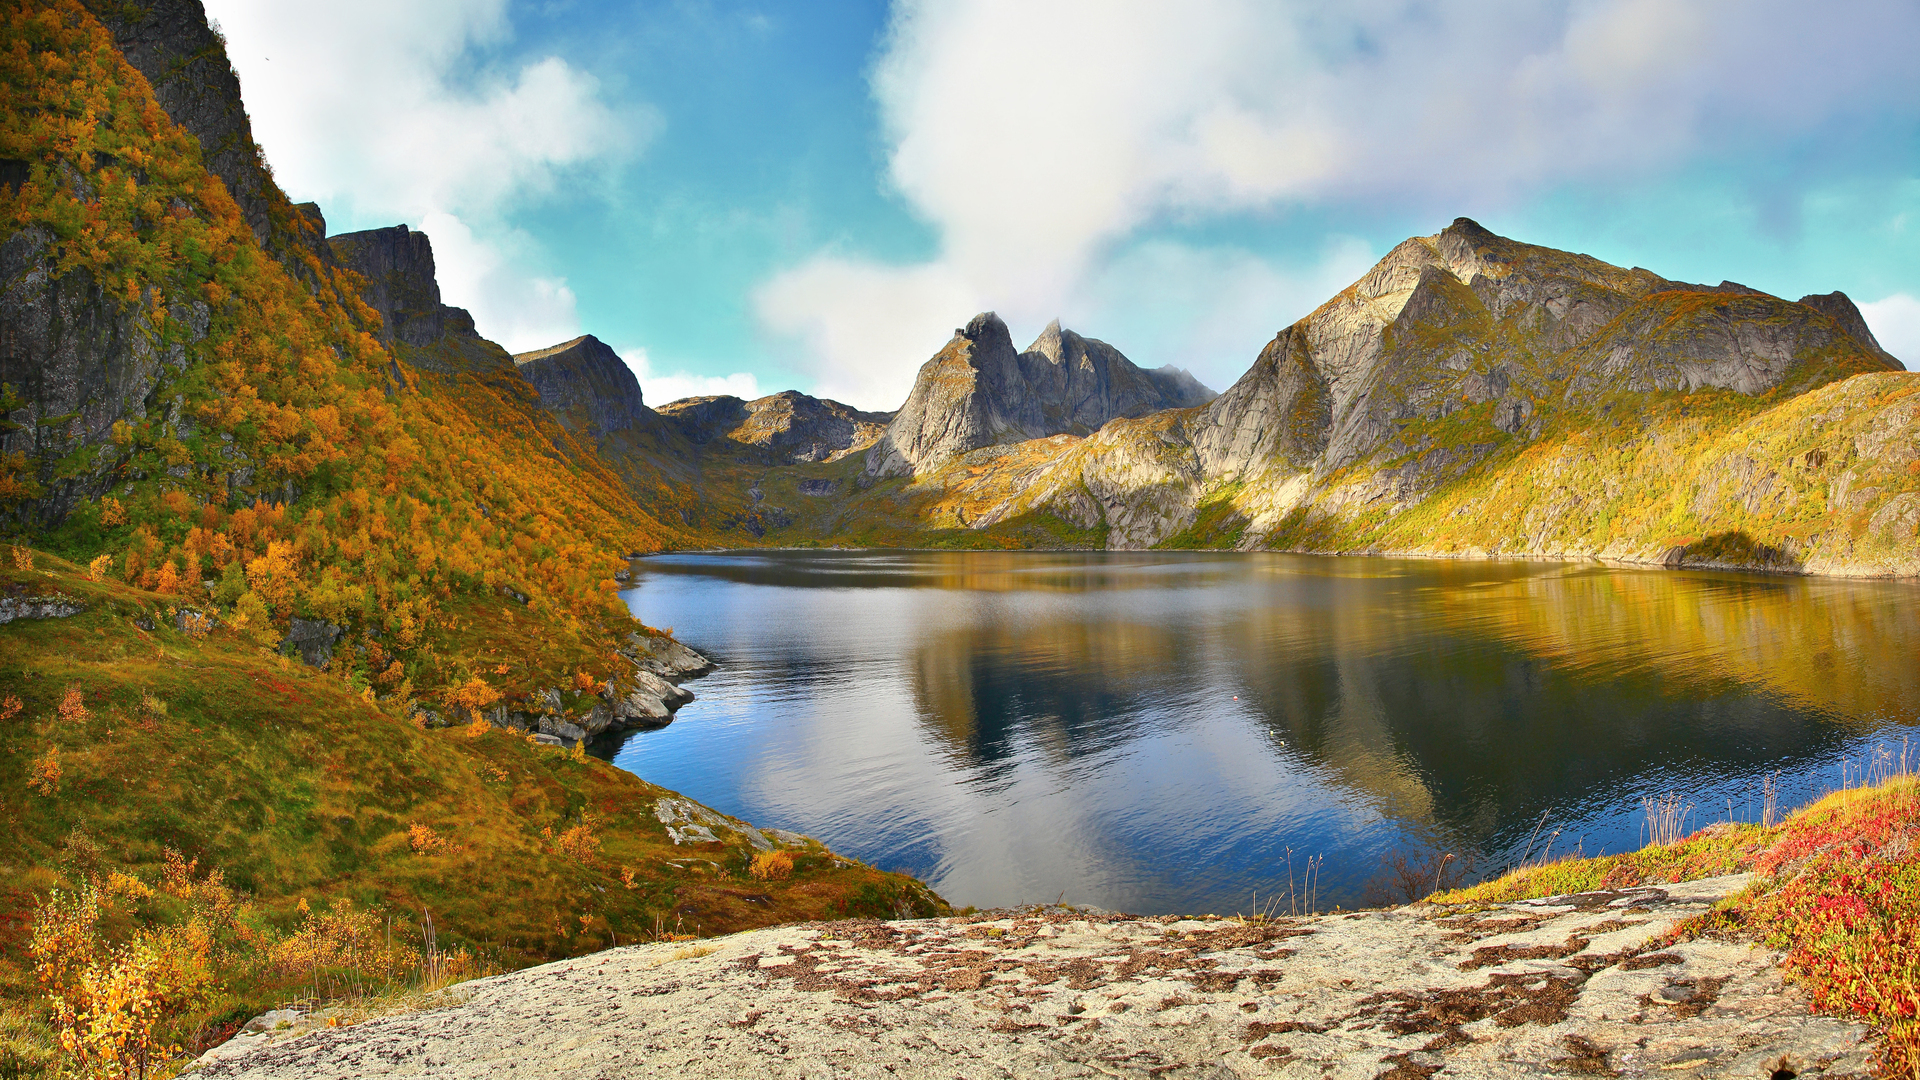 32473 download wallpaper Landscape, Mountains, Lakes screensavers and pictures for free